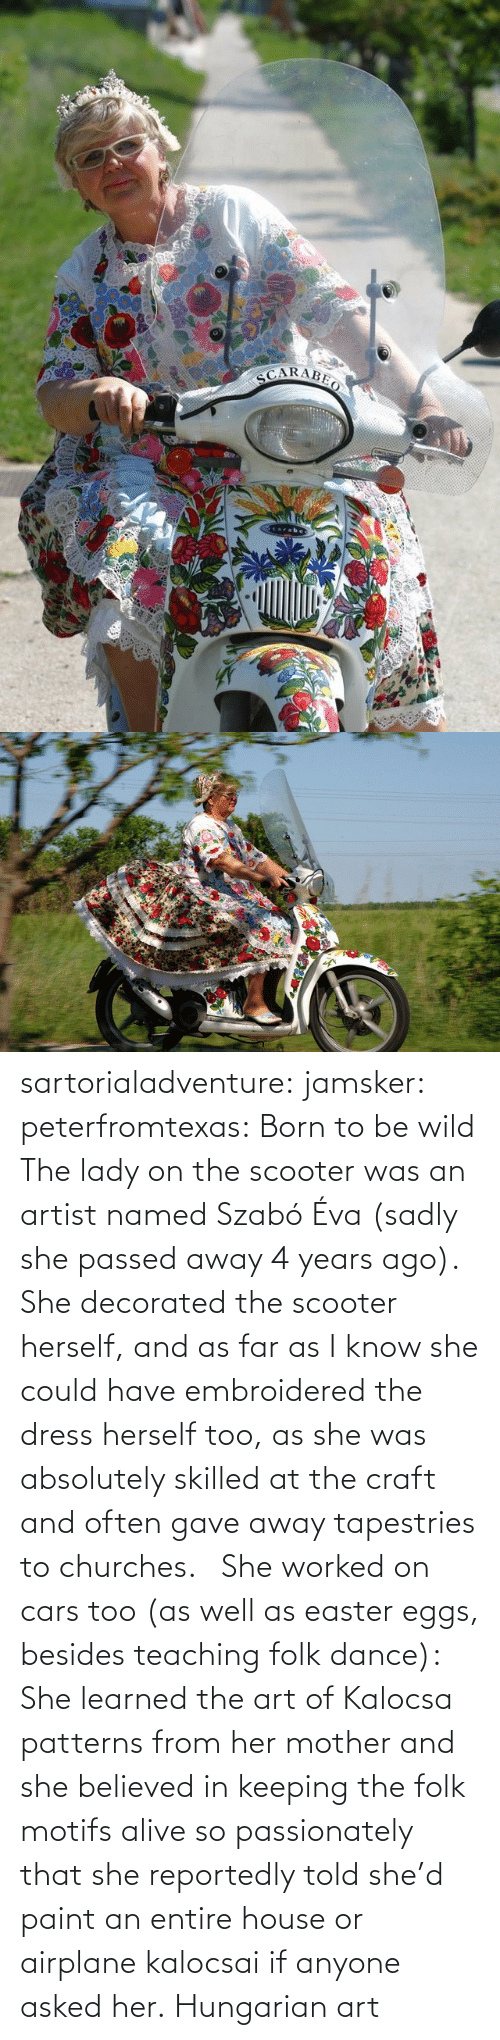 Have: sartorialadventure: jamsker:  peterfromtexas: Born to be wild The lady on the scooter was an artist named Szabó Éva (sadly she passed away 4 years ago). She decorated the scooter herself, and as far as I know she could have embroidered the dress herself too, as she was absolutely skilled at the craft and often gave away tapestries to churches.   She worked on cars too (as well as easter eggs, besides teaching folk dance): She learned the art of Kalocsa patterns from her mother and she believed in keeping the folk motifs alive so passionately that she reportedly told she'd paint an entire house or airplane kalocsai if anyone asked her.  Hungarian art